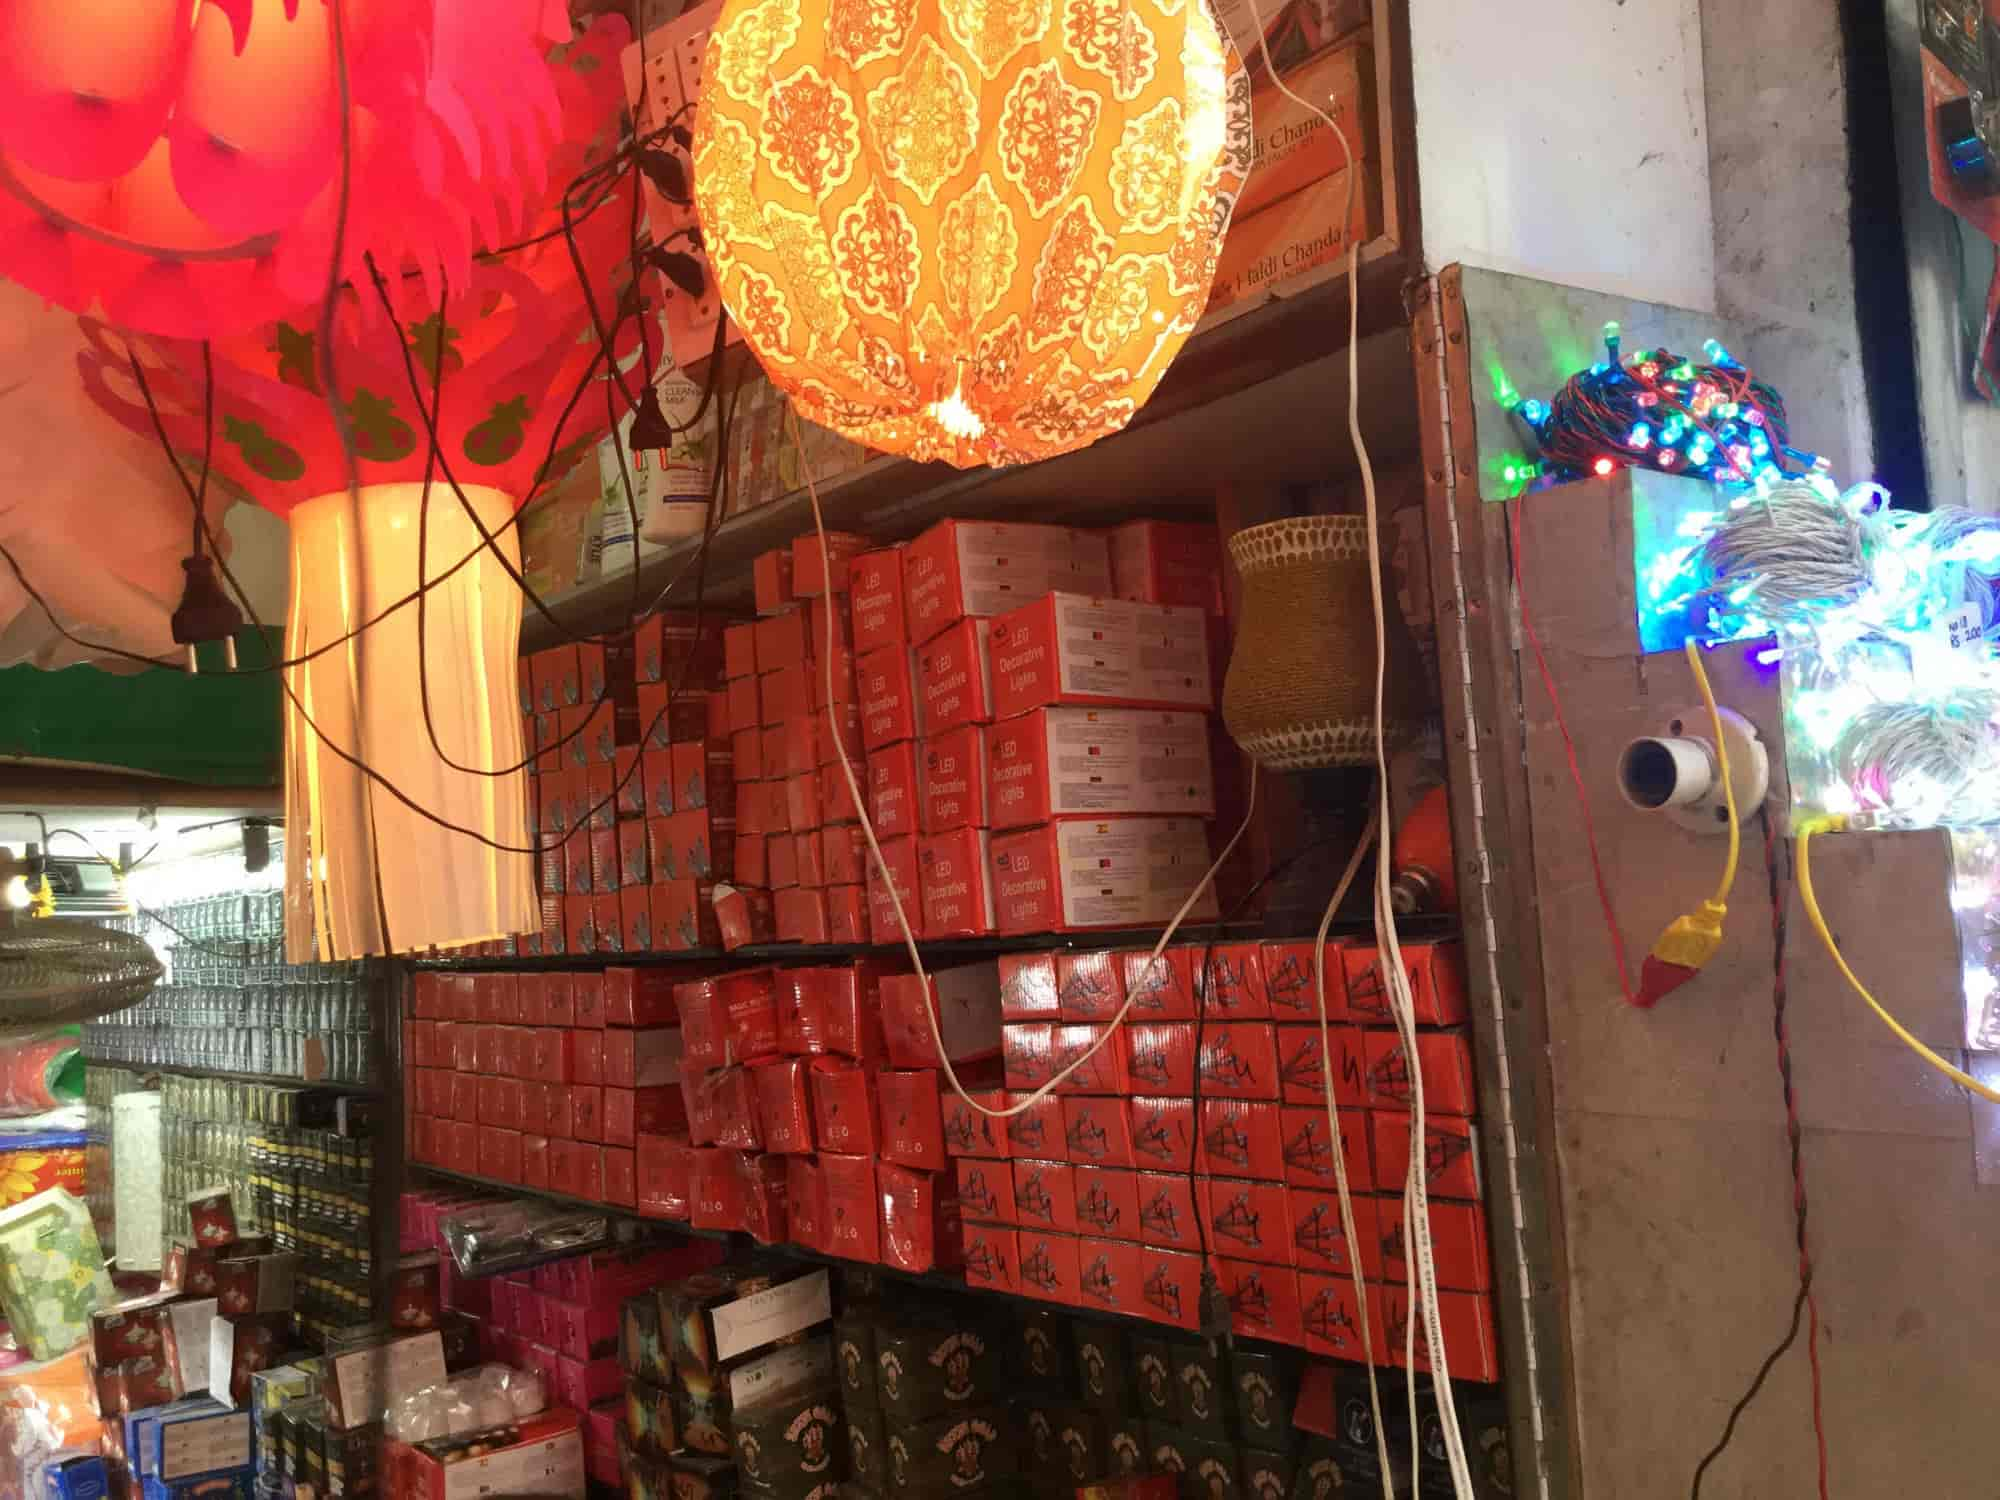 Inside View Of Shop A R Cosmetic Decoration Lamps Photos Sadar Bazar Delhi